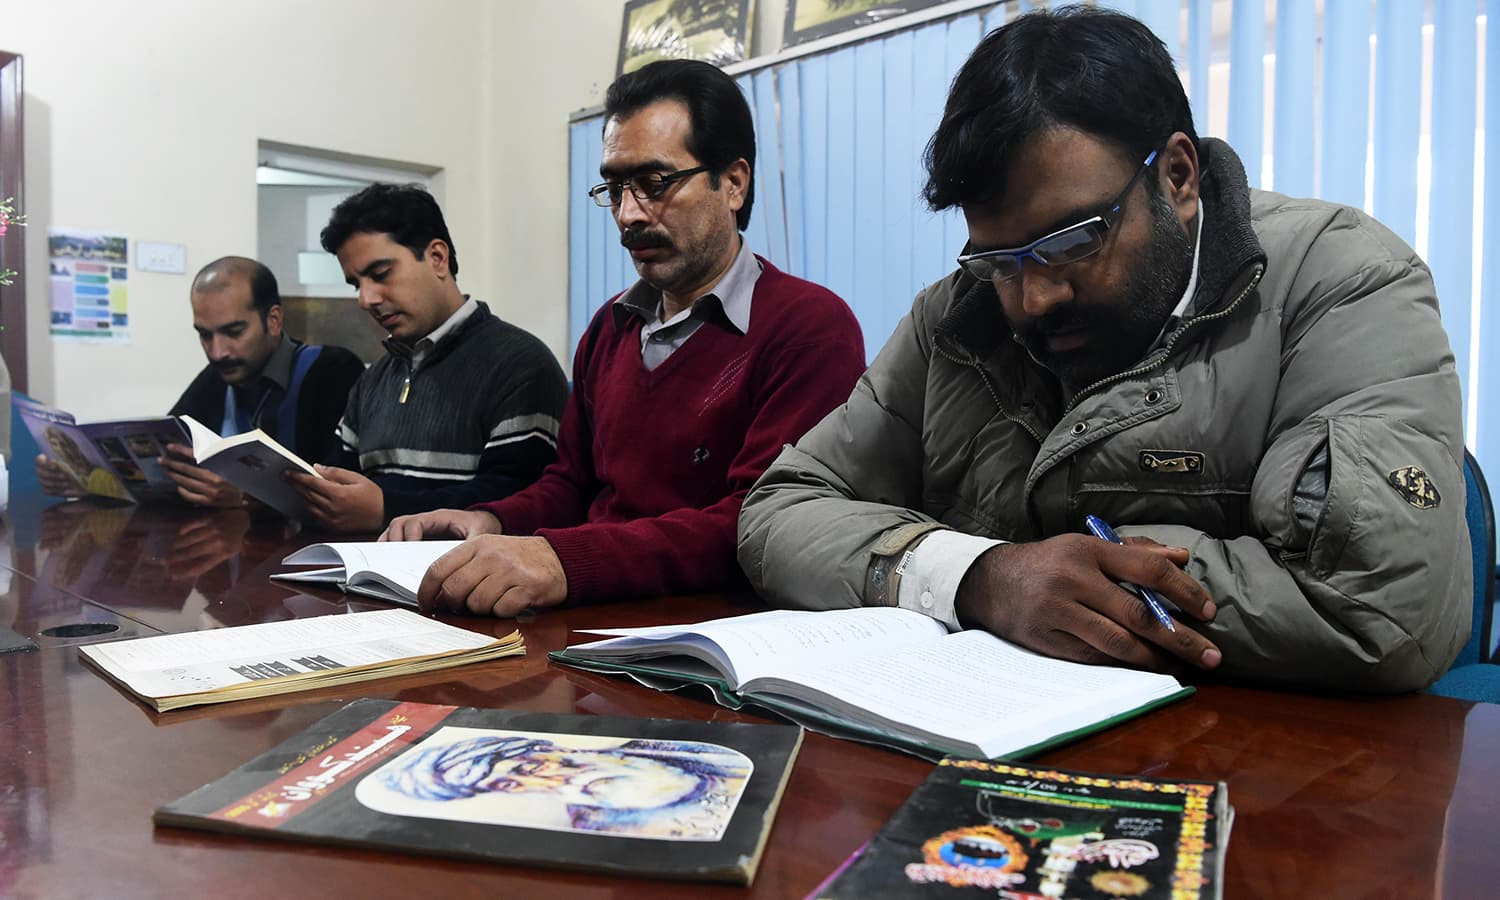 Men read Hindko language books at The Hindko Centre in Peshawar.— AFP